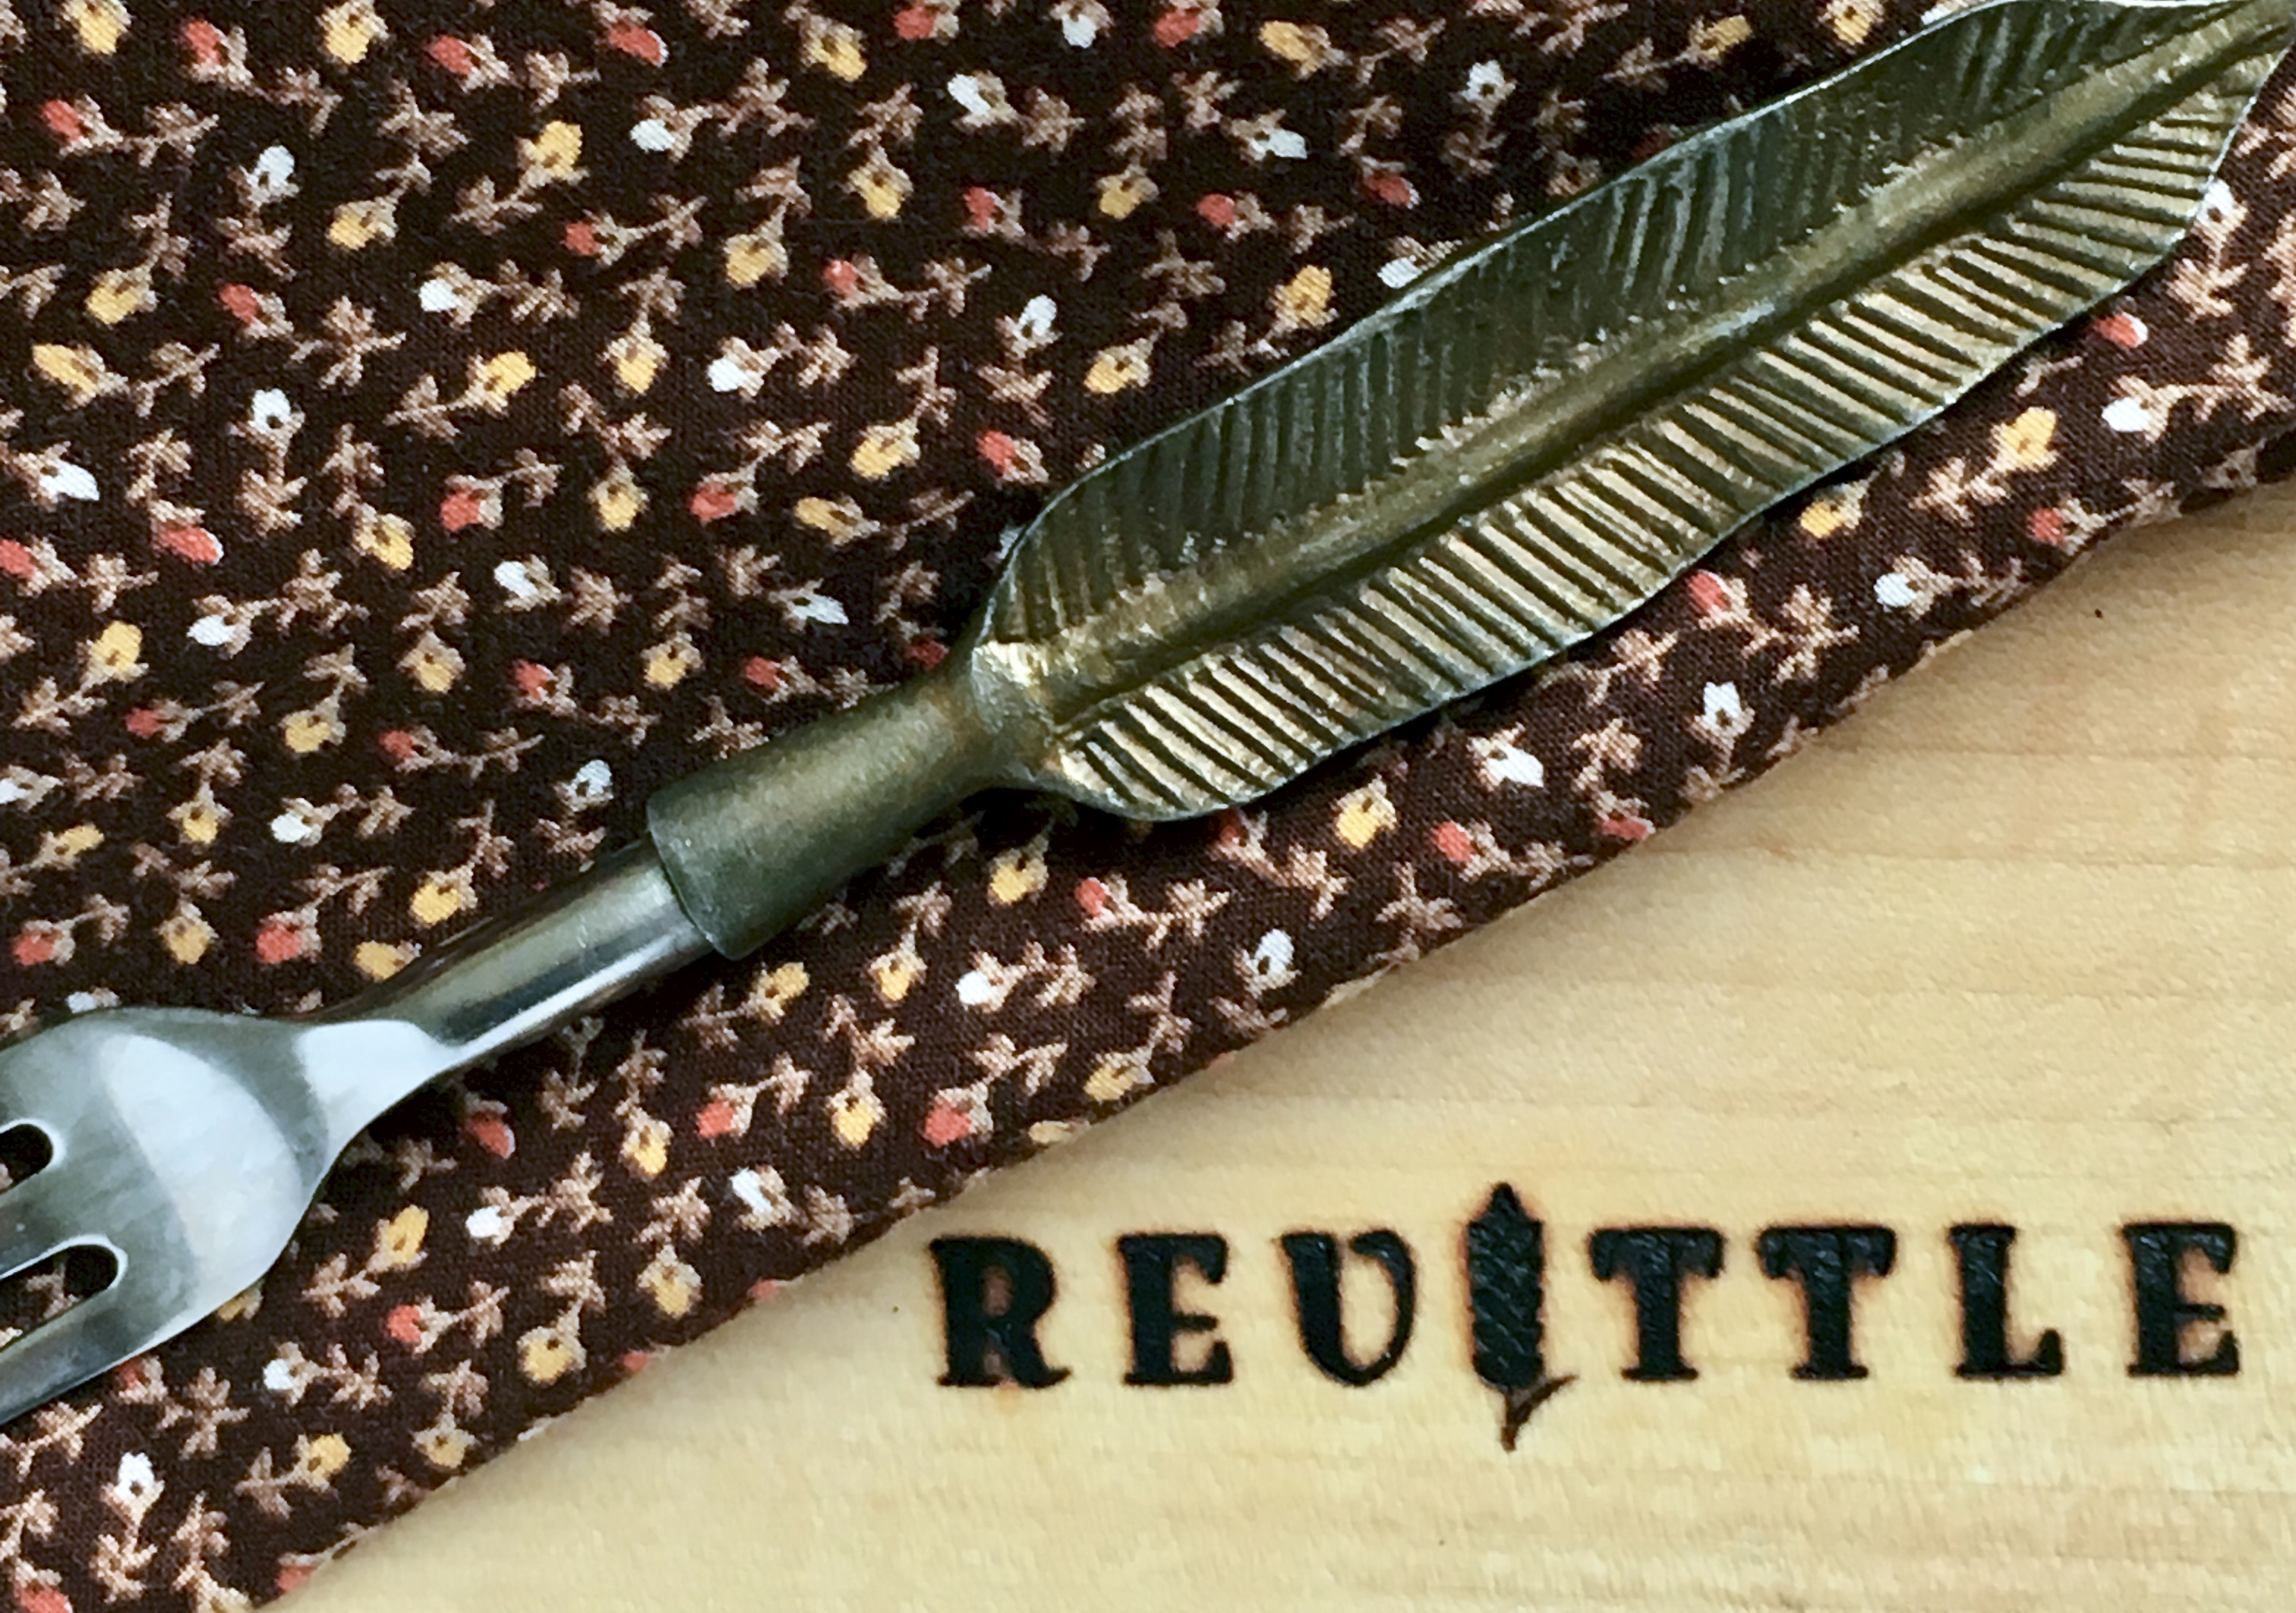 revittle cutting board with napkin and fork